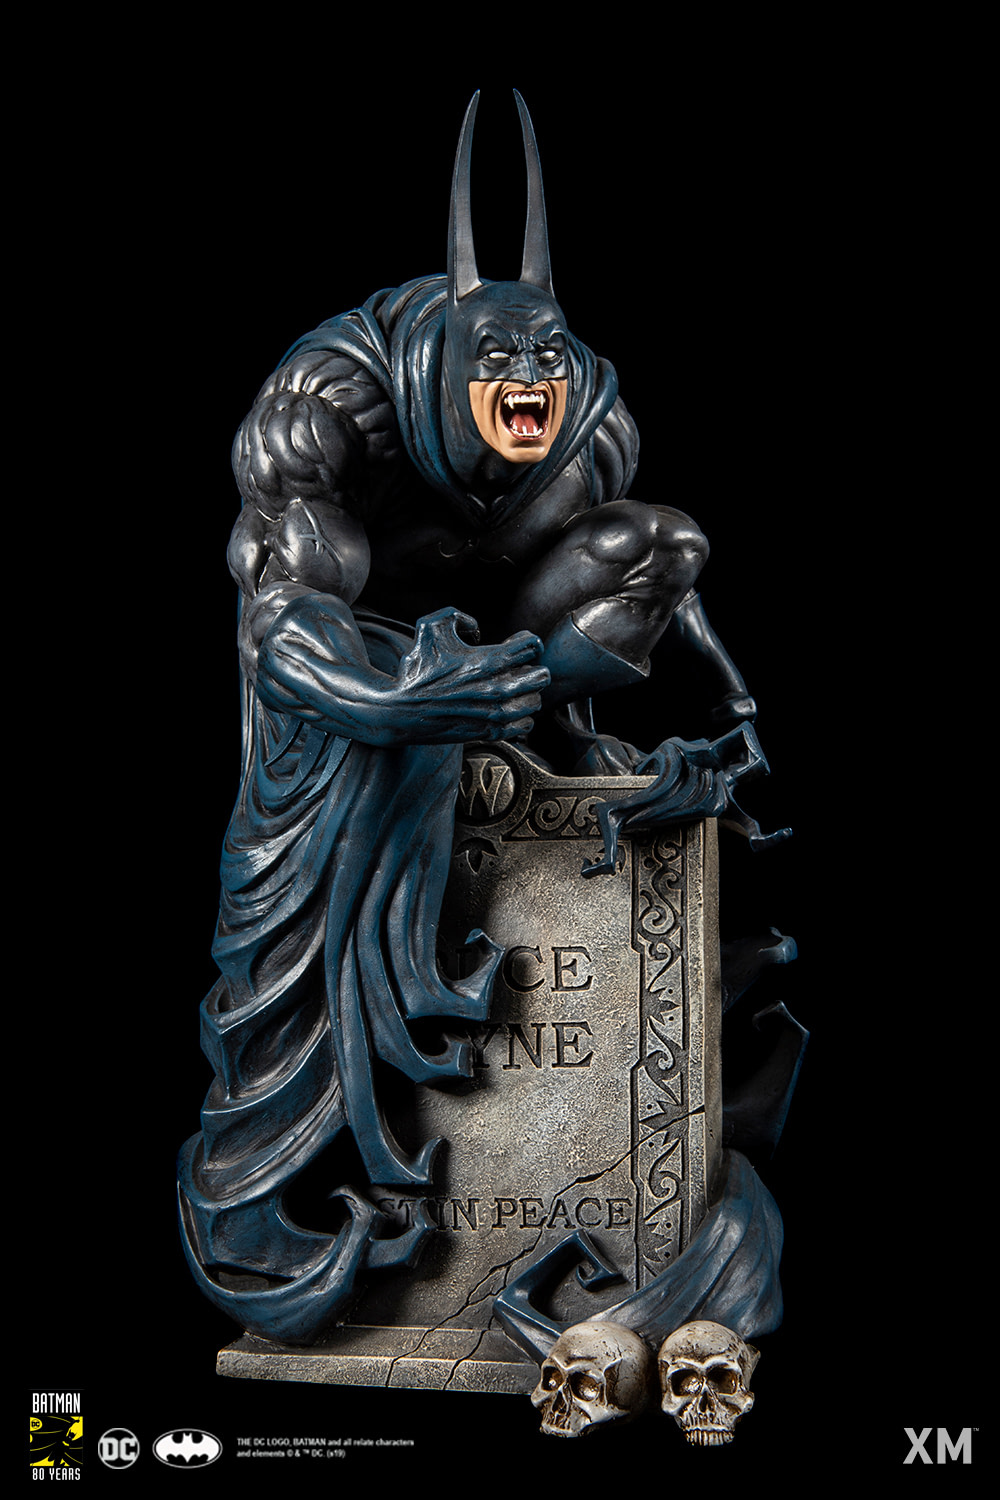 Batman Wants Your Blood in New XM Studios Statue